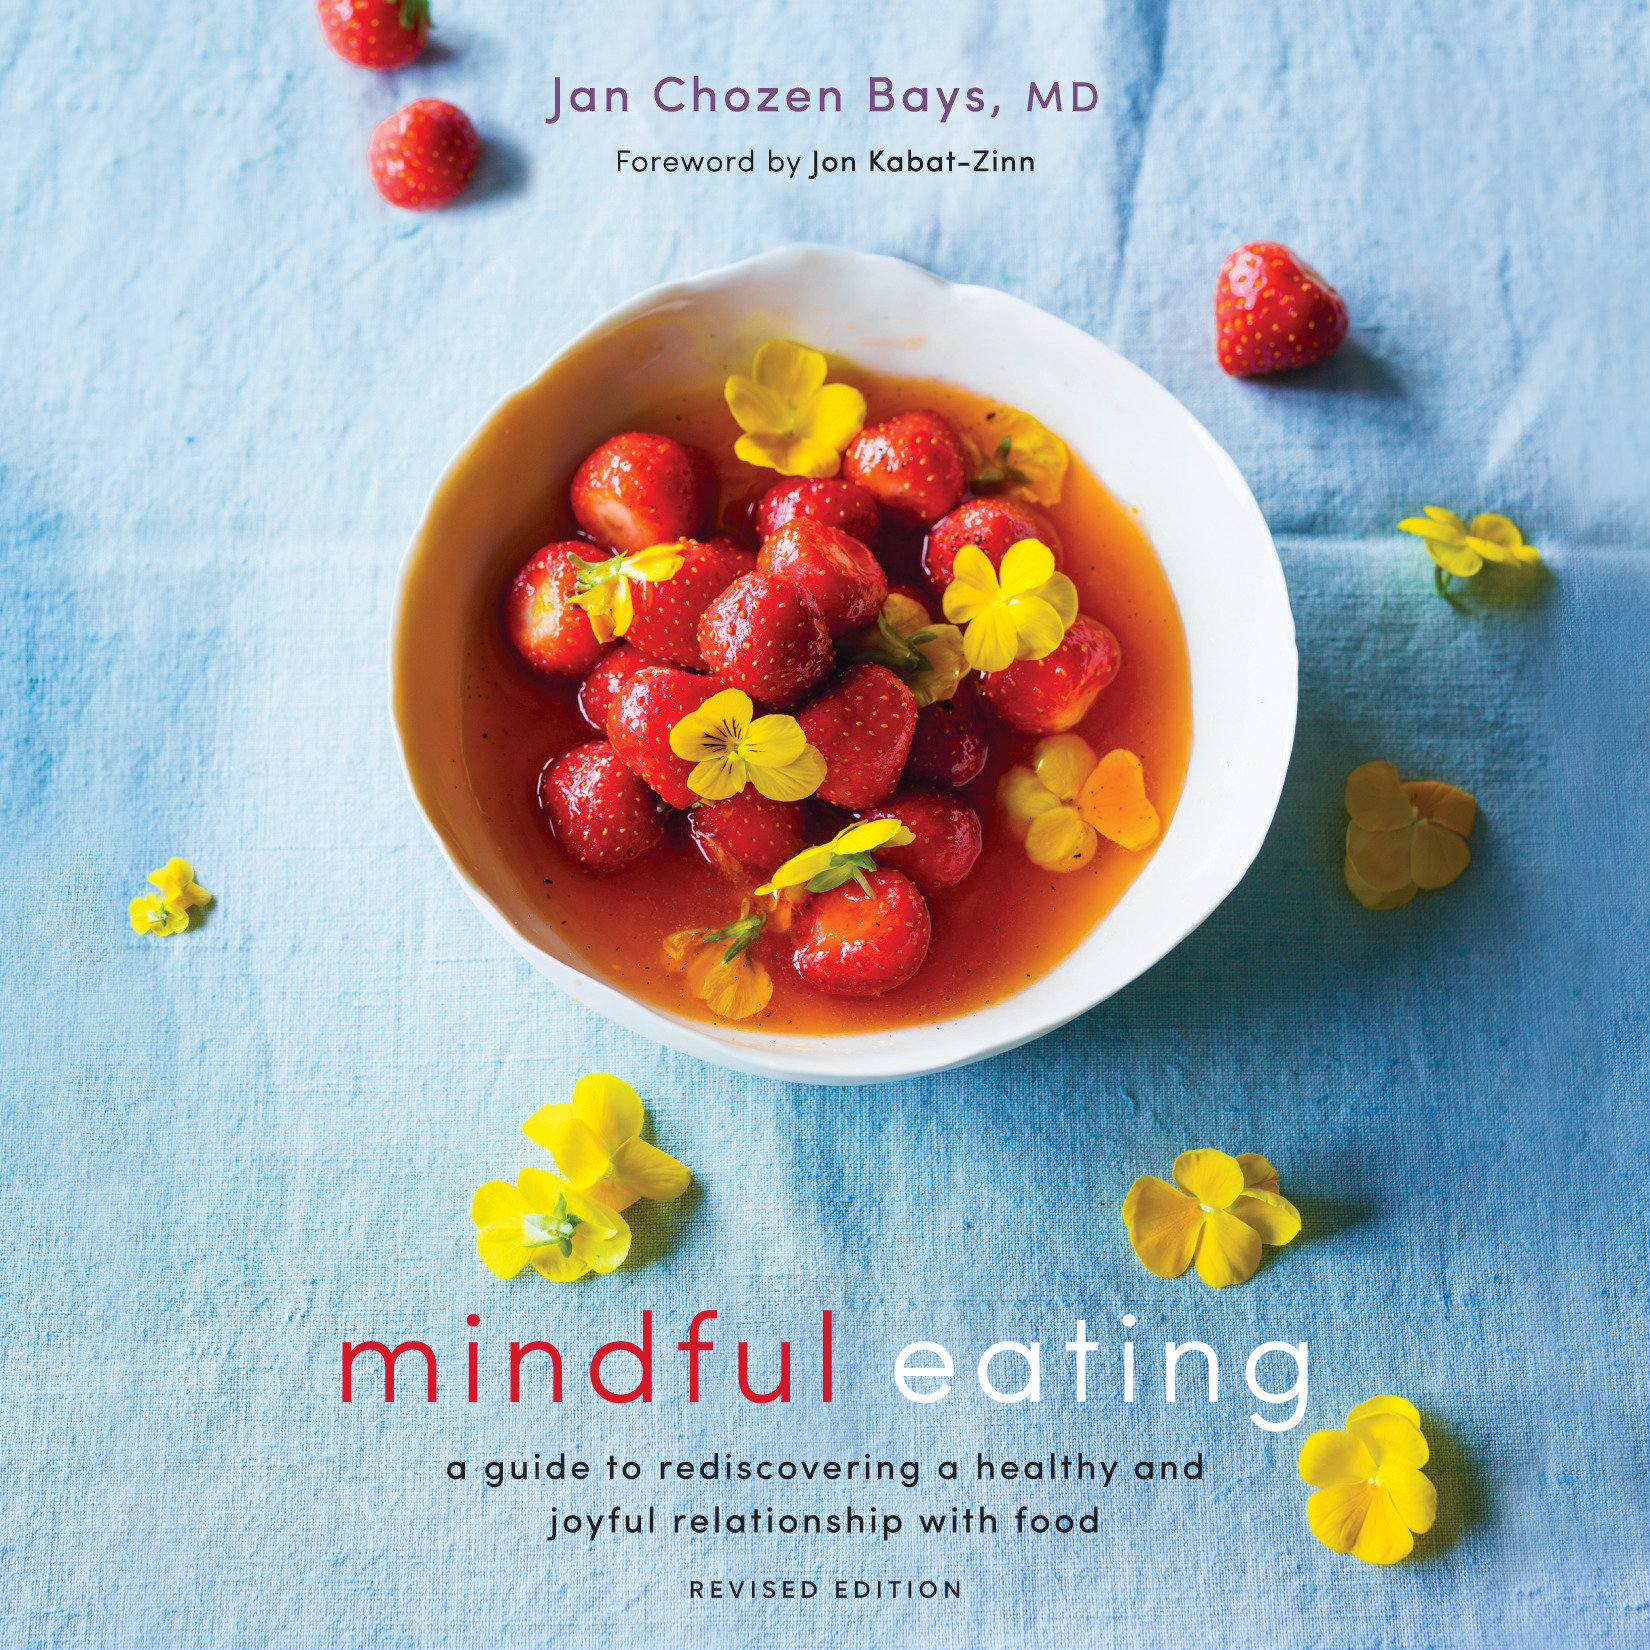 Printable Mindful Eating: A Guide to Rediscovering a Healthy and Joyful Relationship with Food Audiobook Cover Art